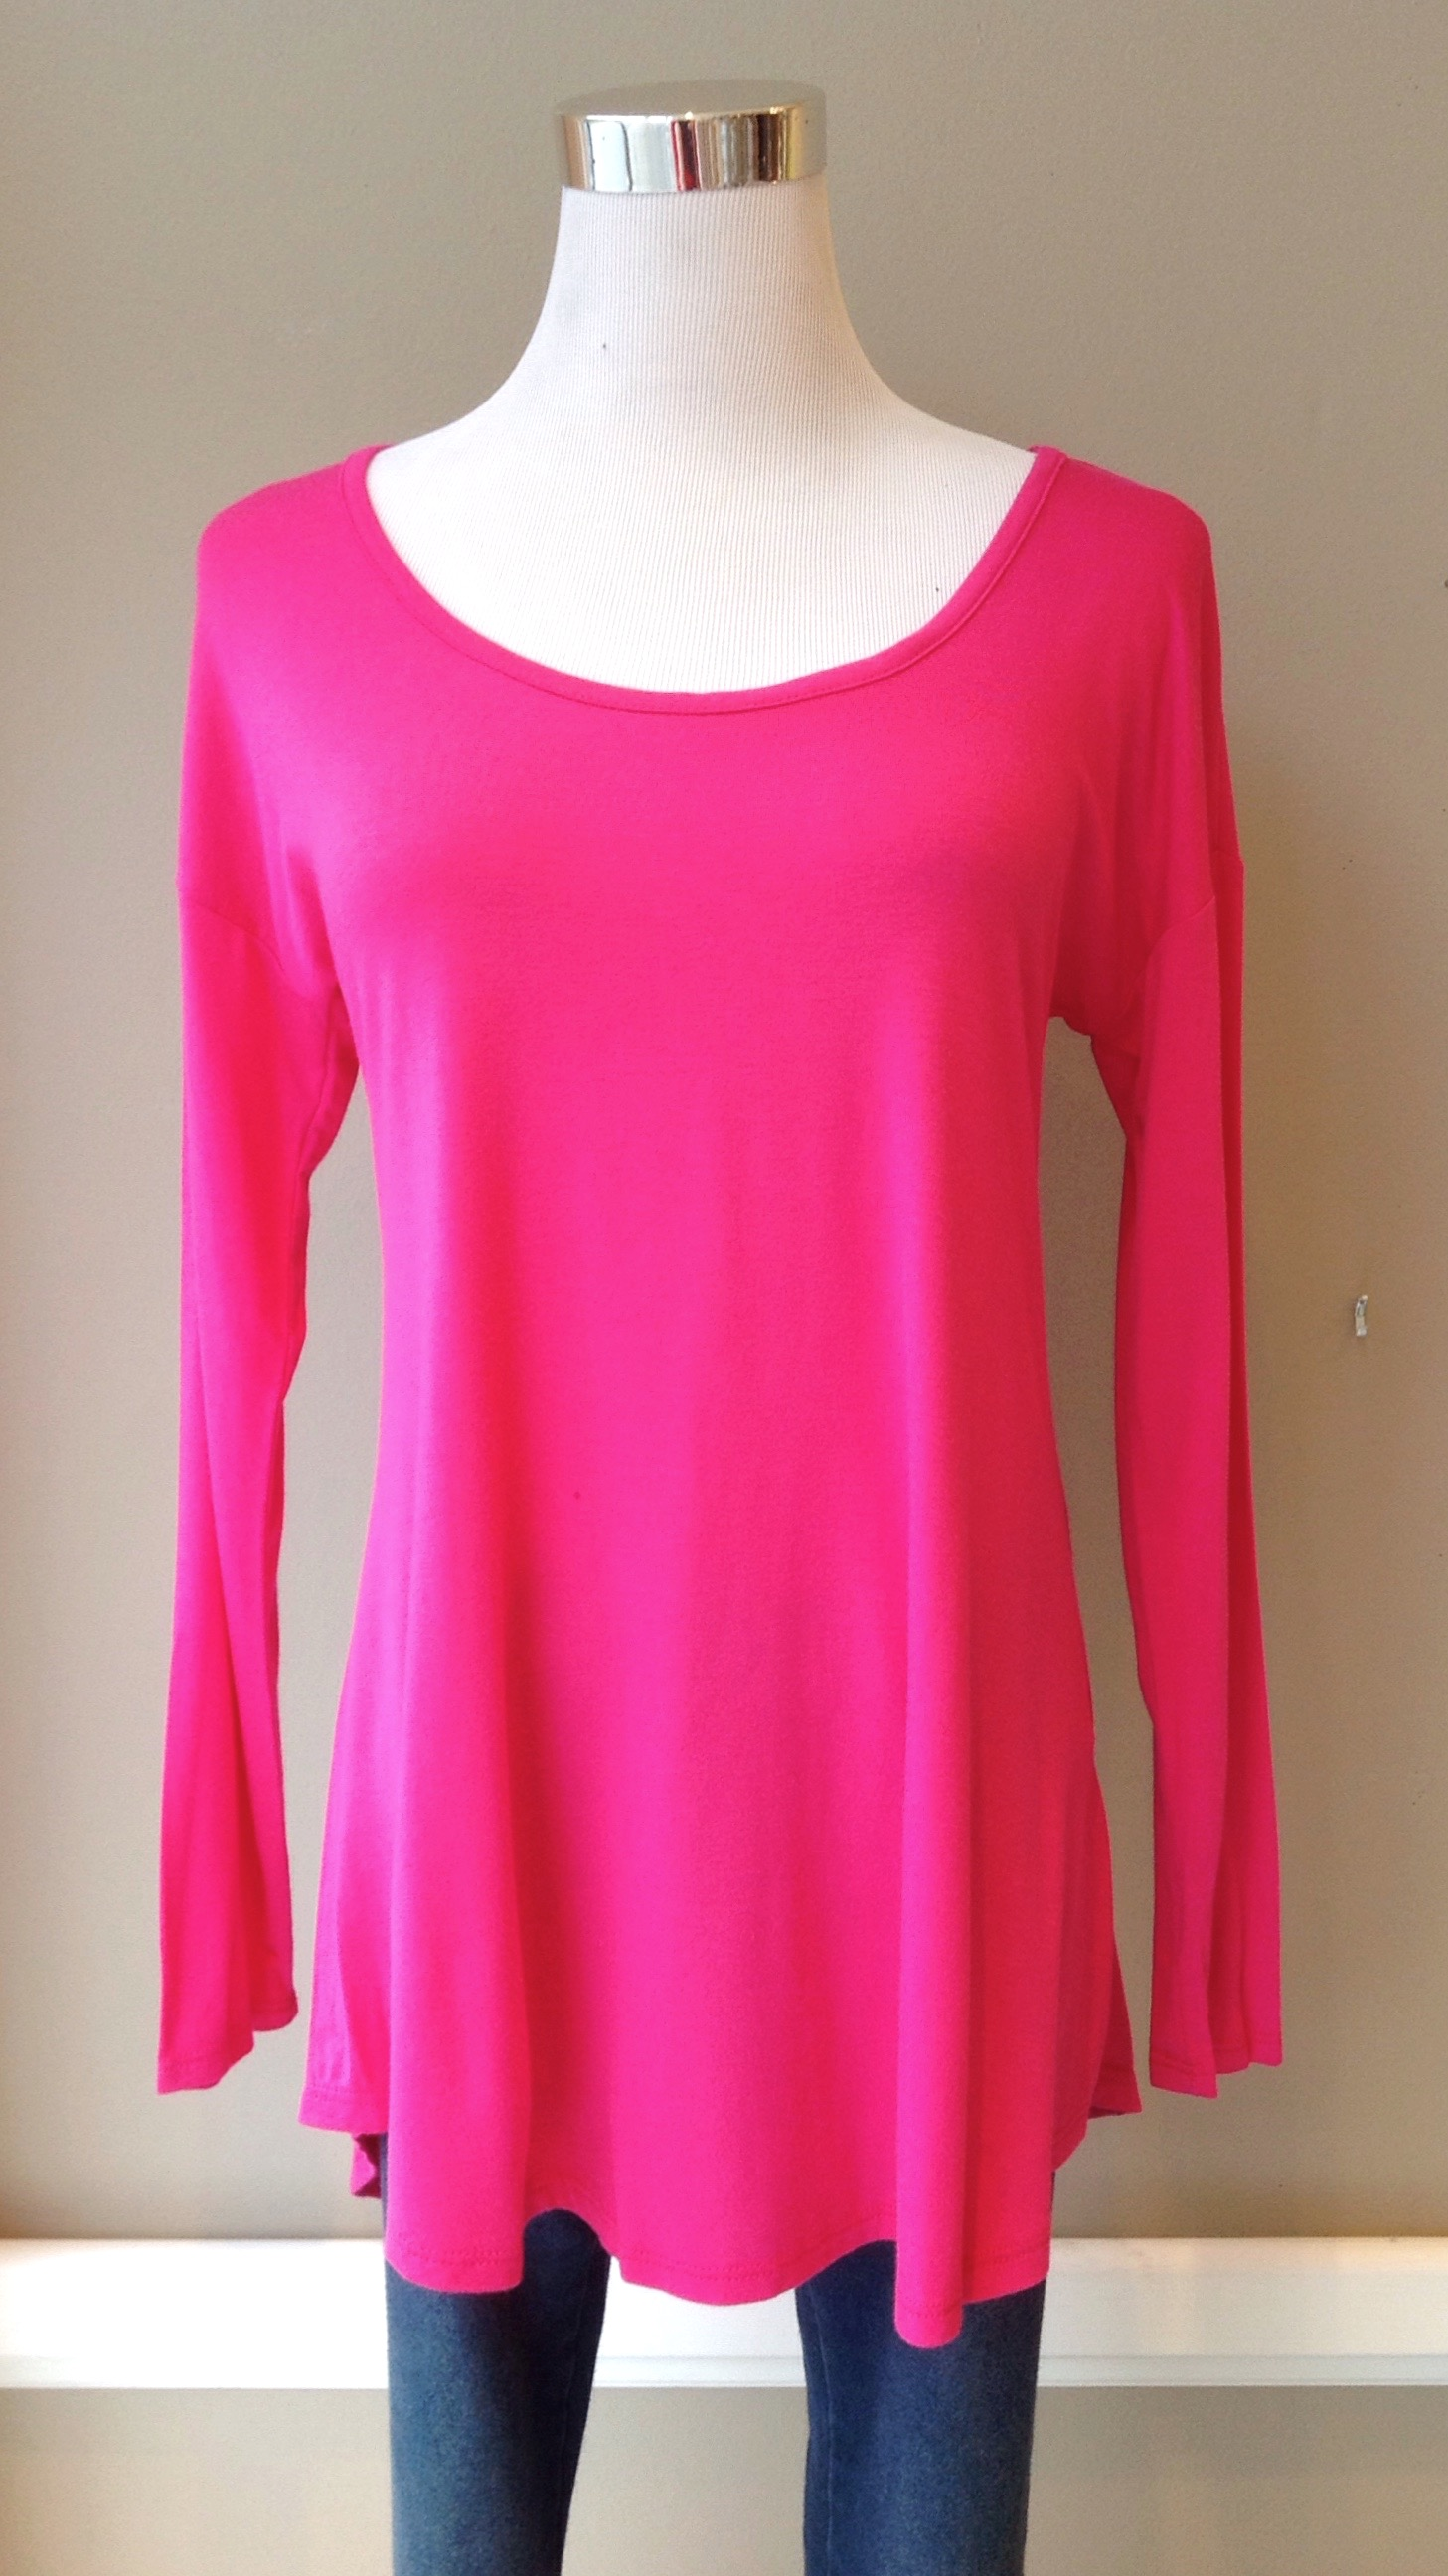 Fuchsia scoop neck top, $26